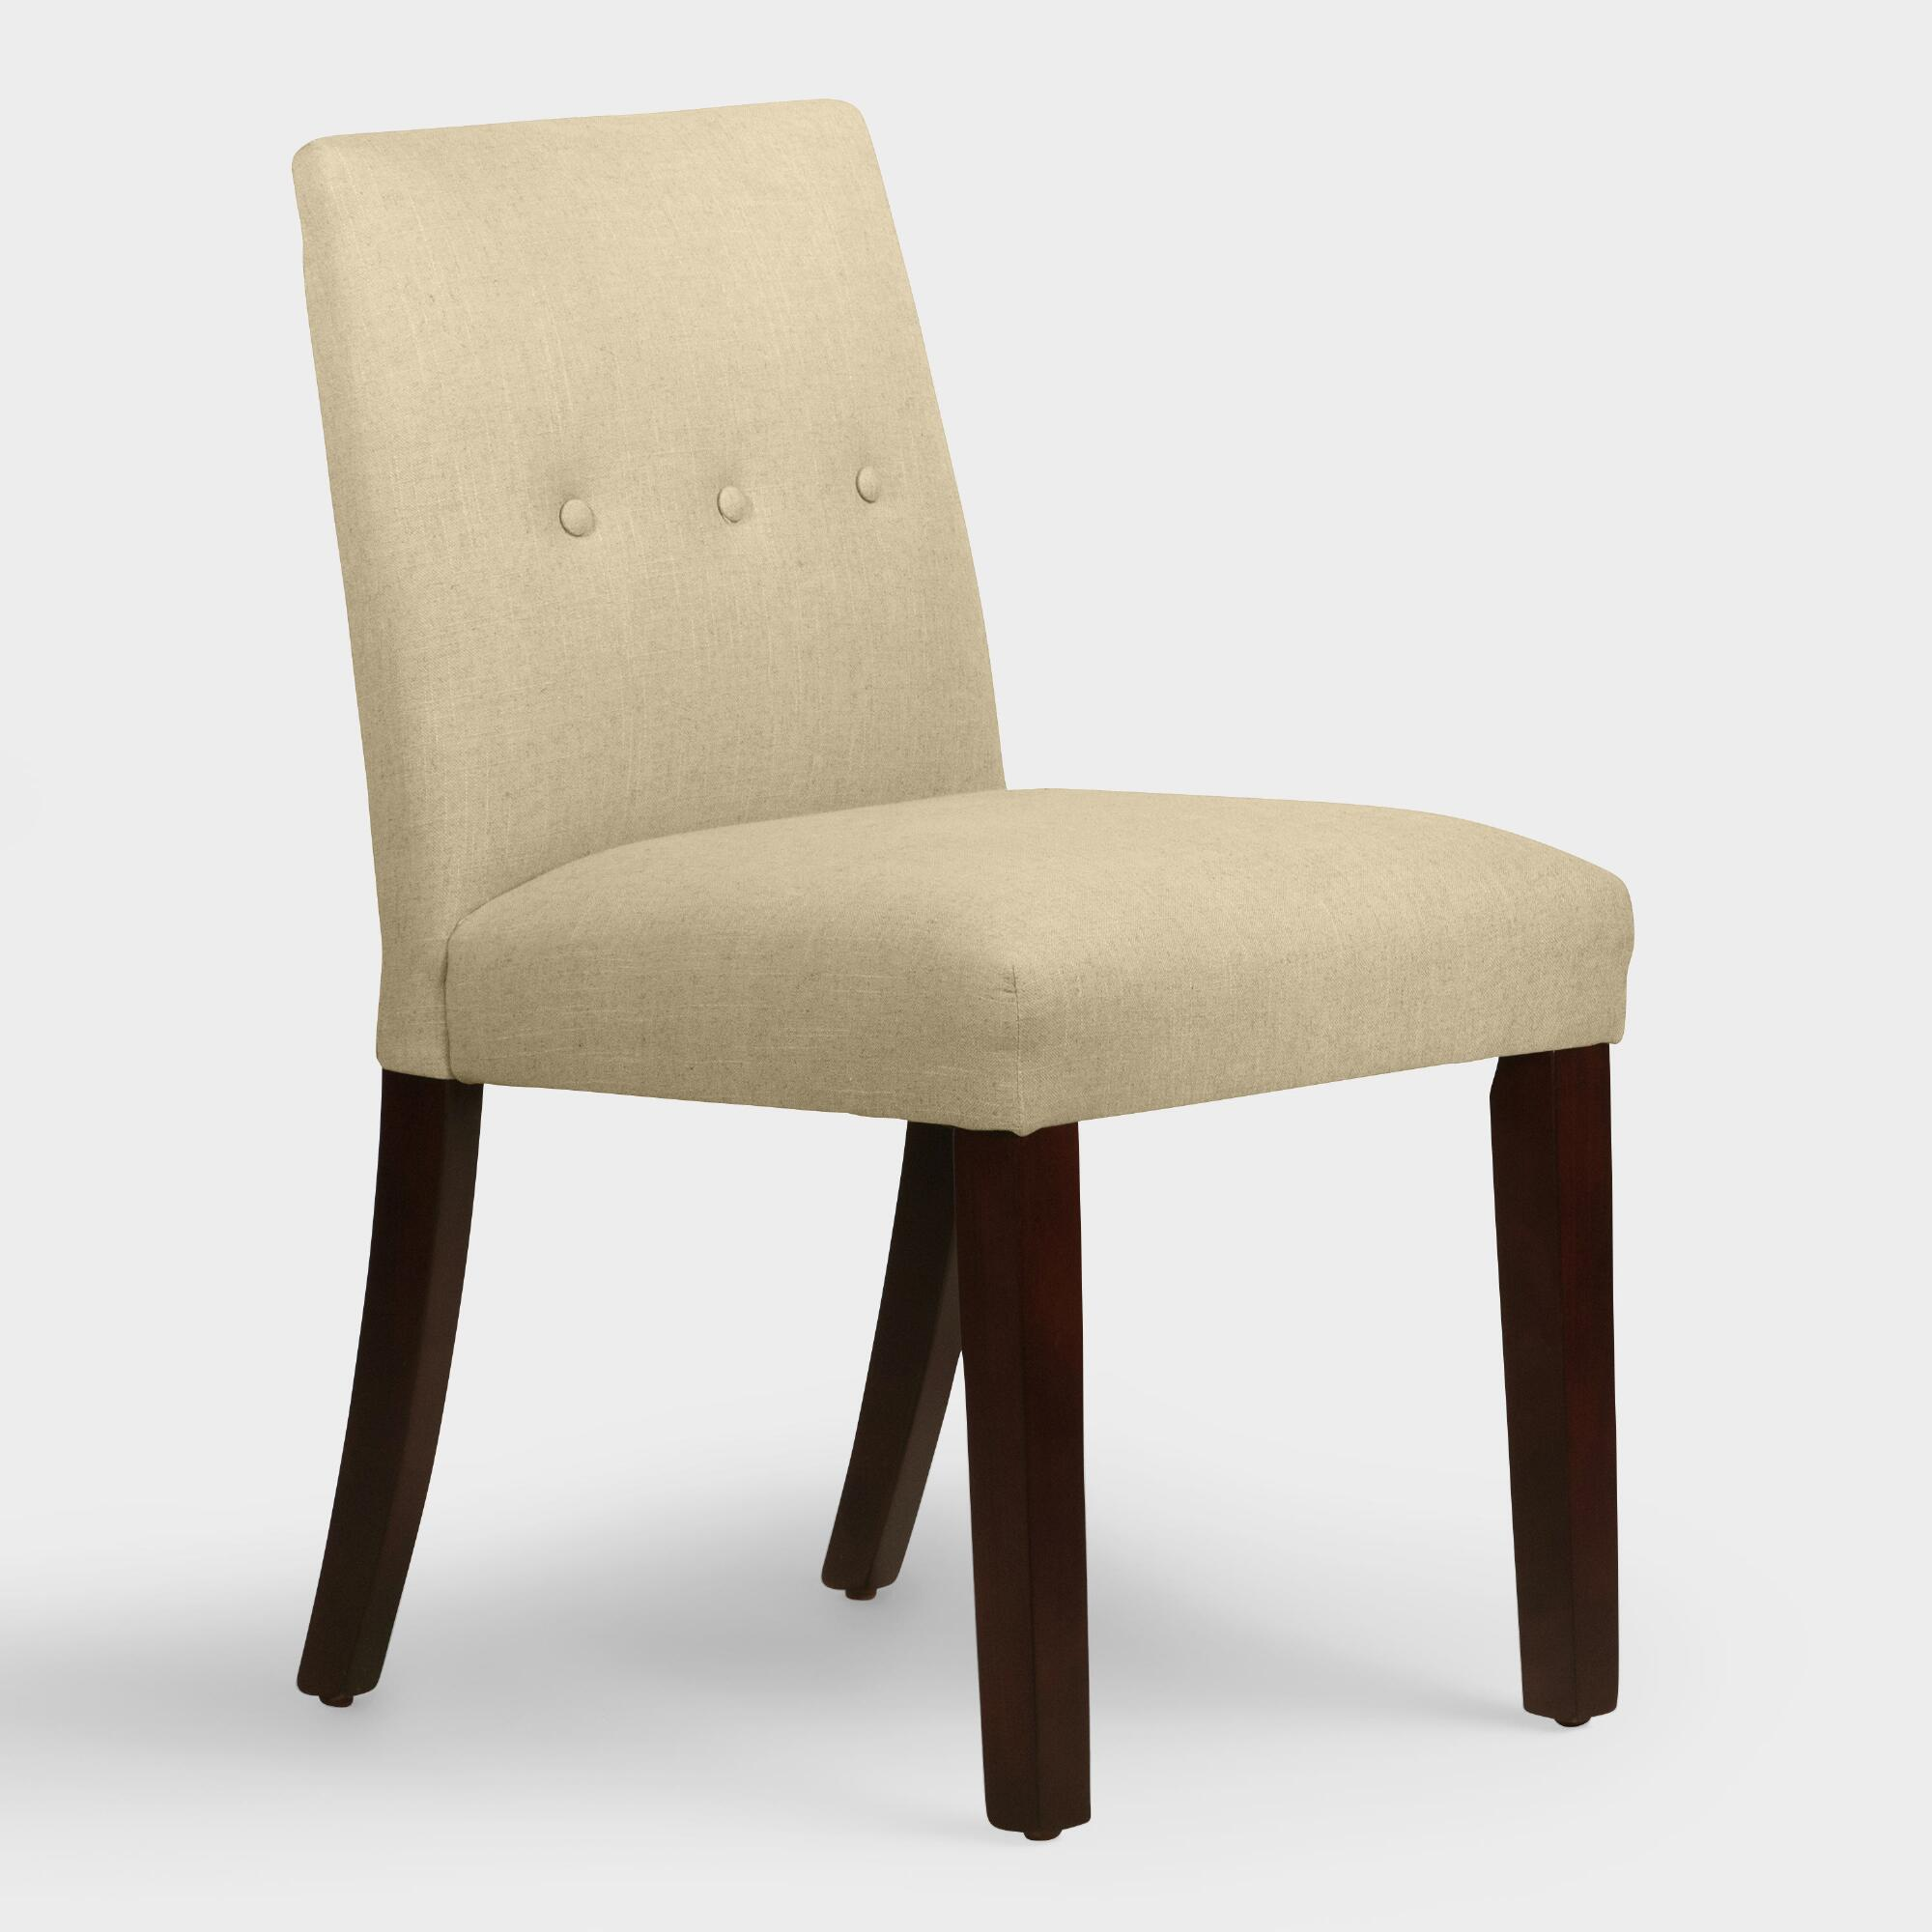 Linen jule upholstered dining chair world market for Upholstered linen dining chairs